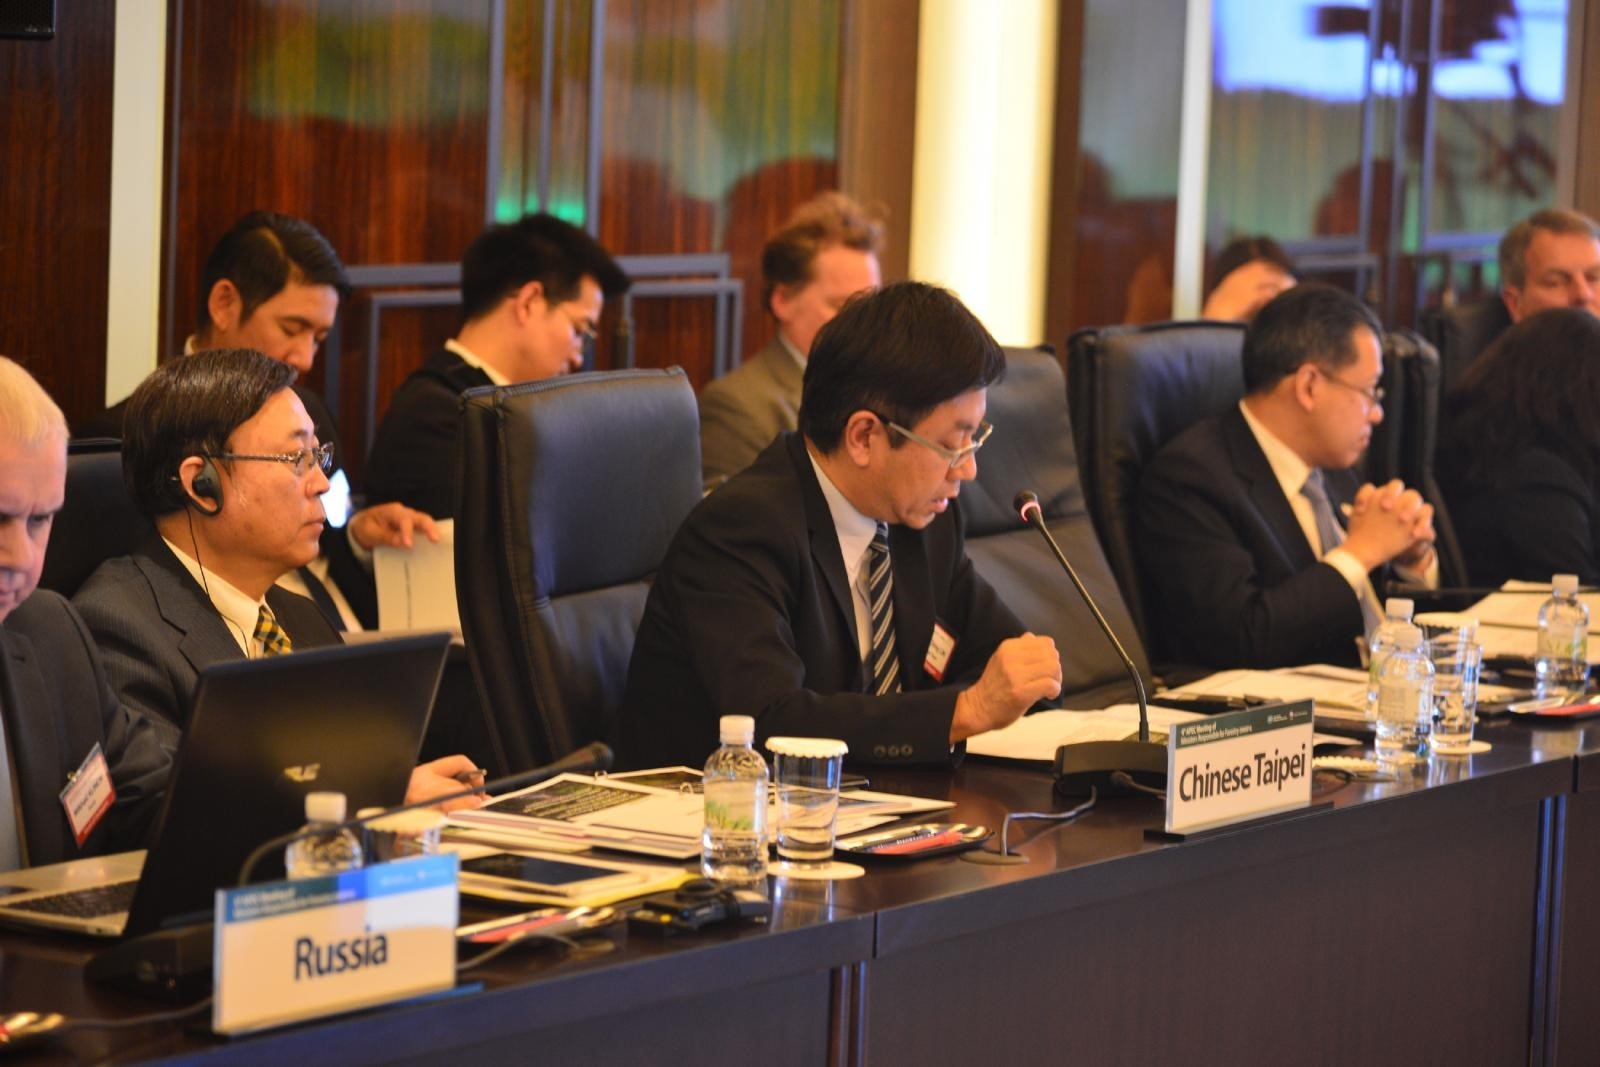 From October 30 to November 1 of 2017, Lin Hwa-ching, Director-General of the Forestry Bureau , Council of Agriculture, Executive Yuan, and Yue-hsing Star Huang, Director-General of the Taiwan Forestry Research Institute, were in Seoul, Korea, to attend the 4th APEC Meeting of Ministers Responsible for Forestry (MMRF4).